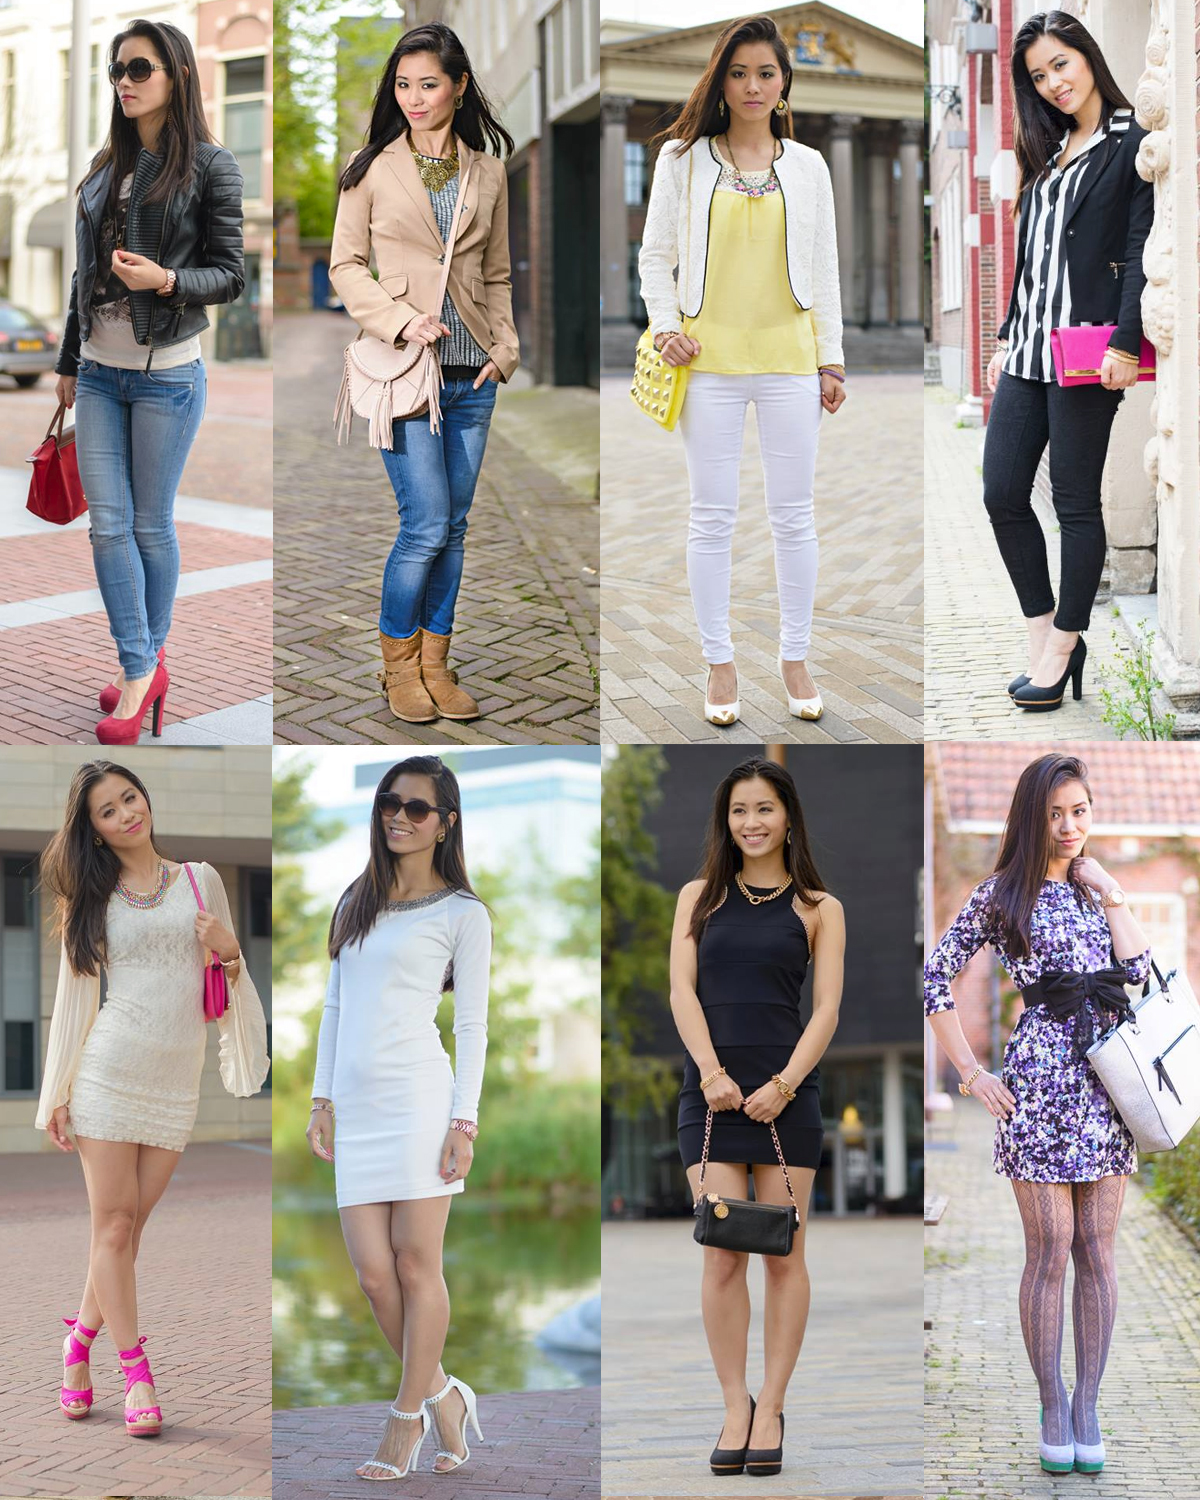 Outfits-fotos-blazers-summer-dress-2013-My-Huong Outfits van 2013